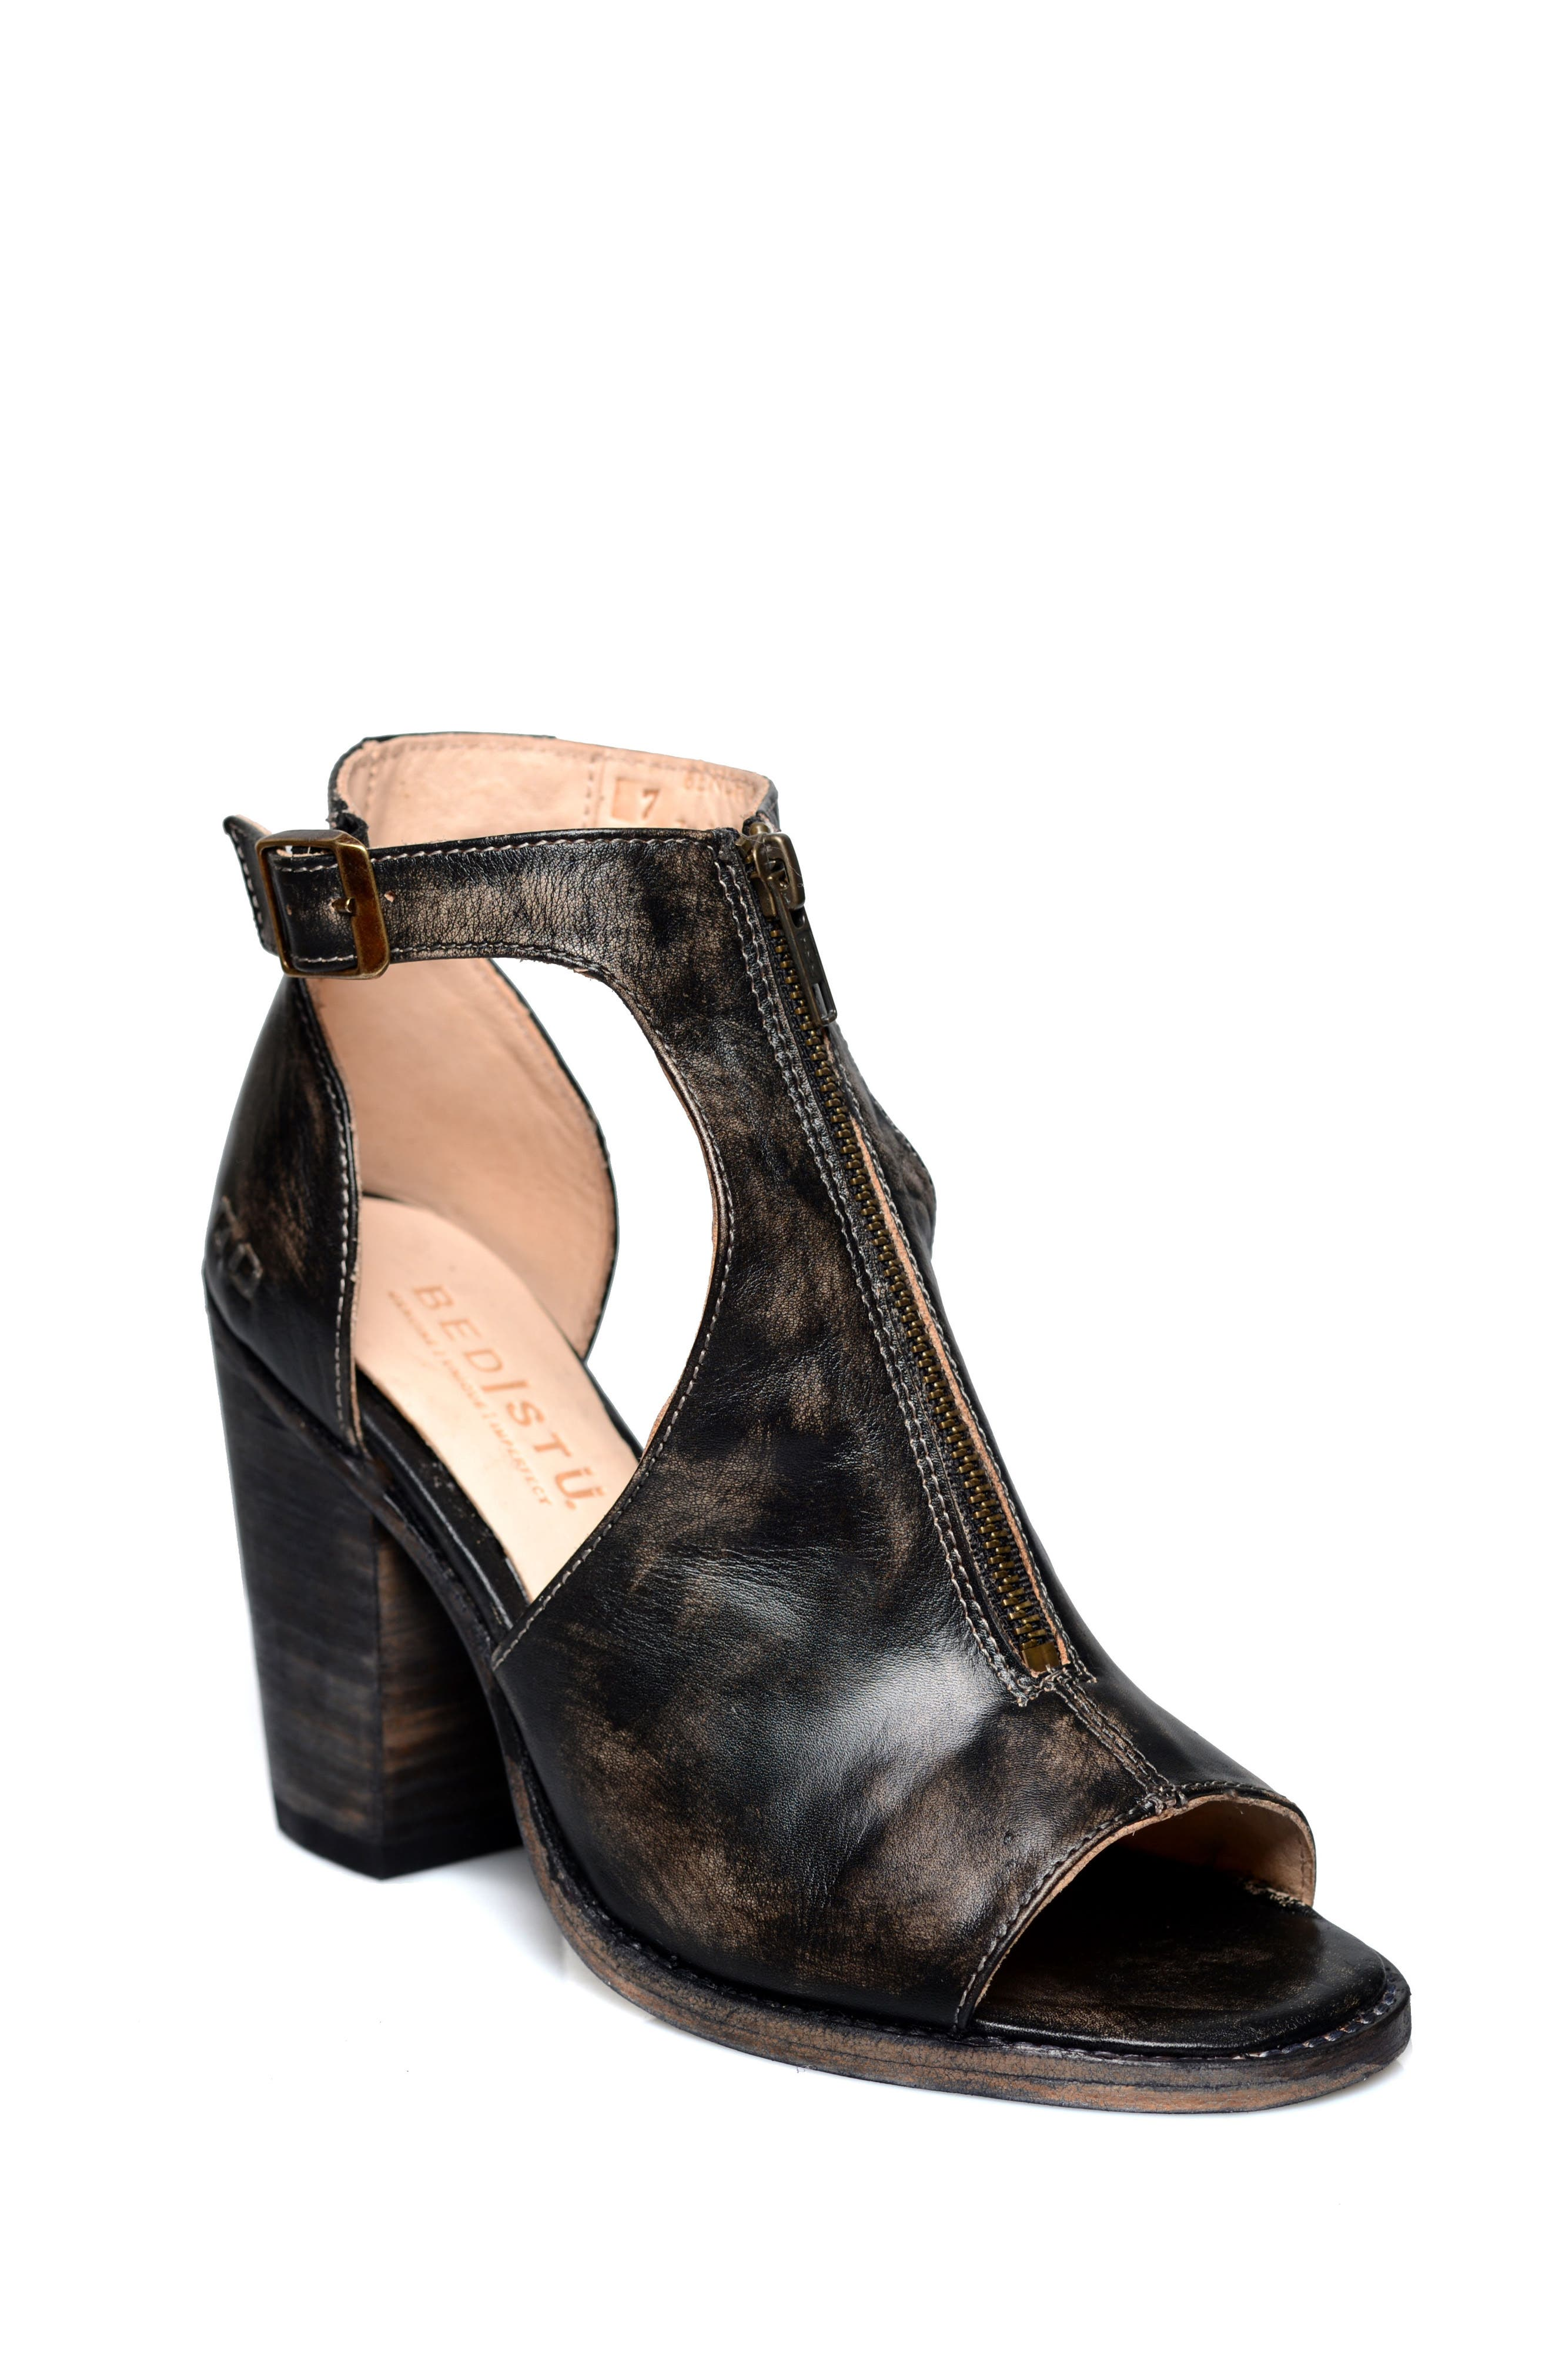 Main Image - Bed Stu Olena Open Toe Bootie (Women)